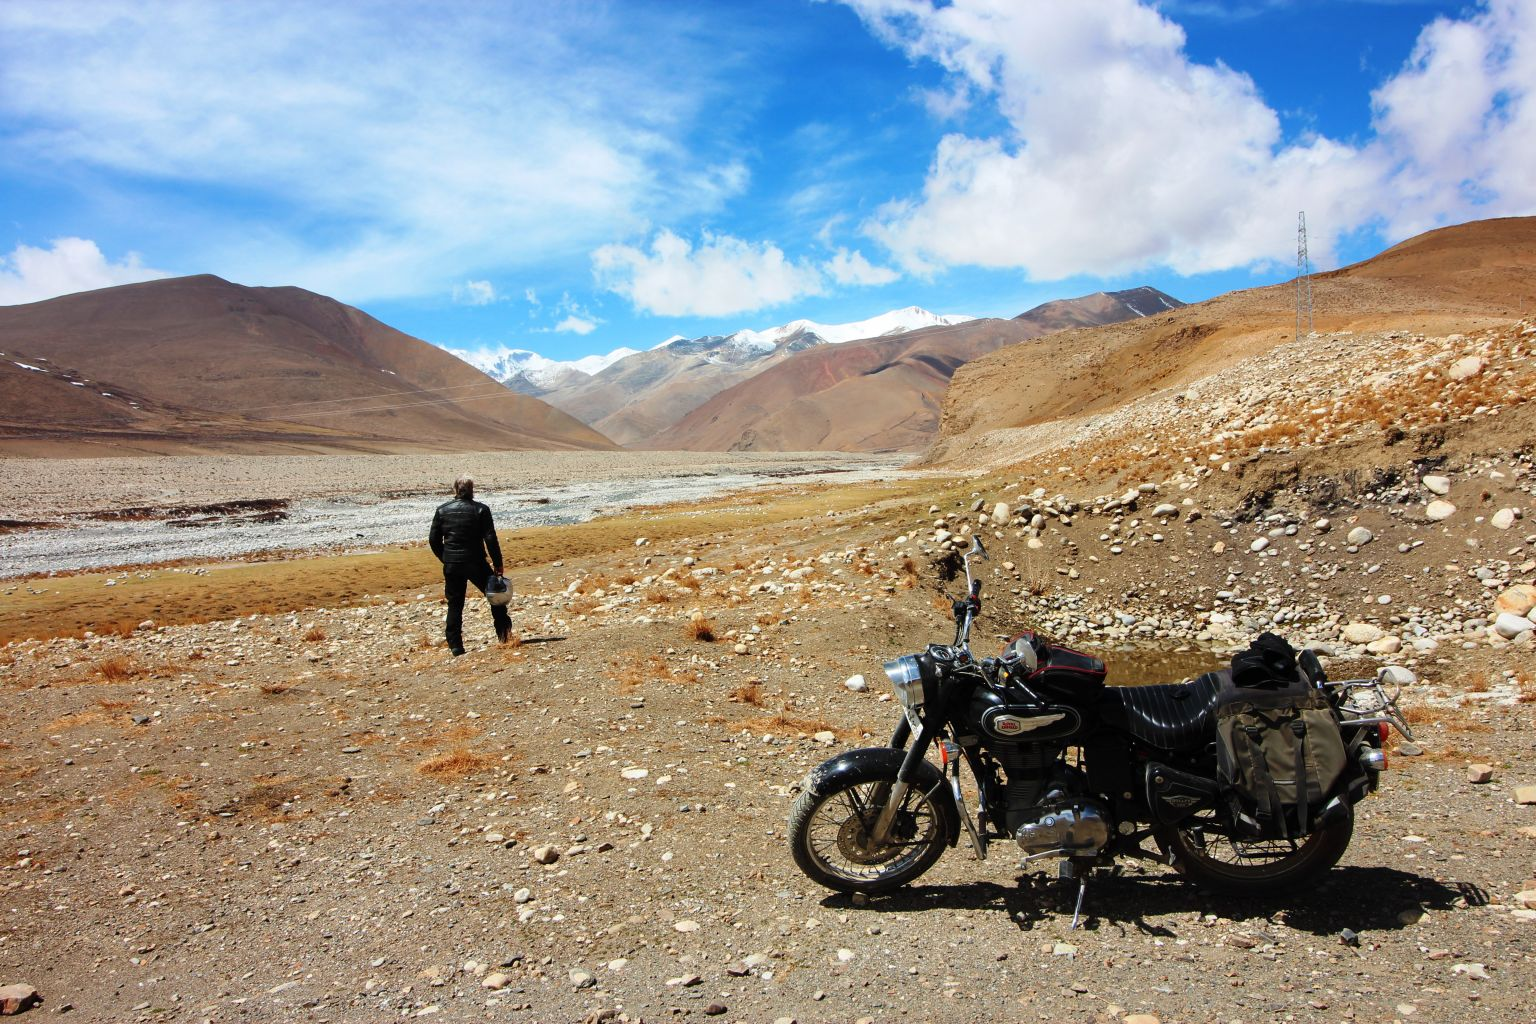 Motorcycling to My. Everest